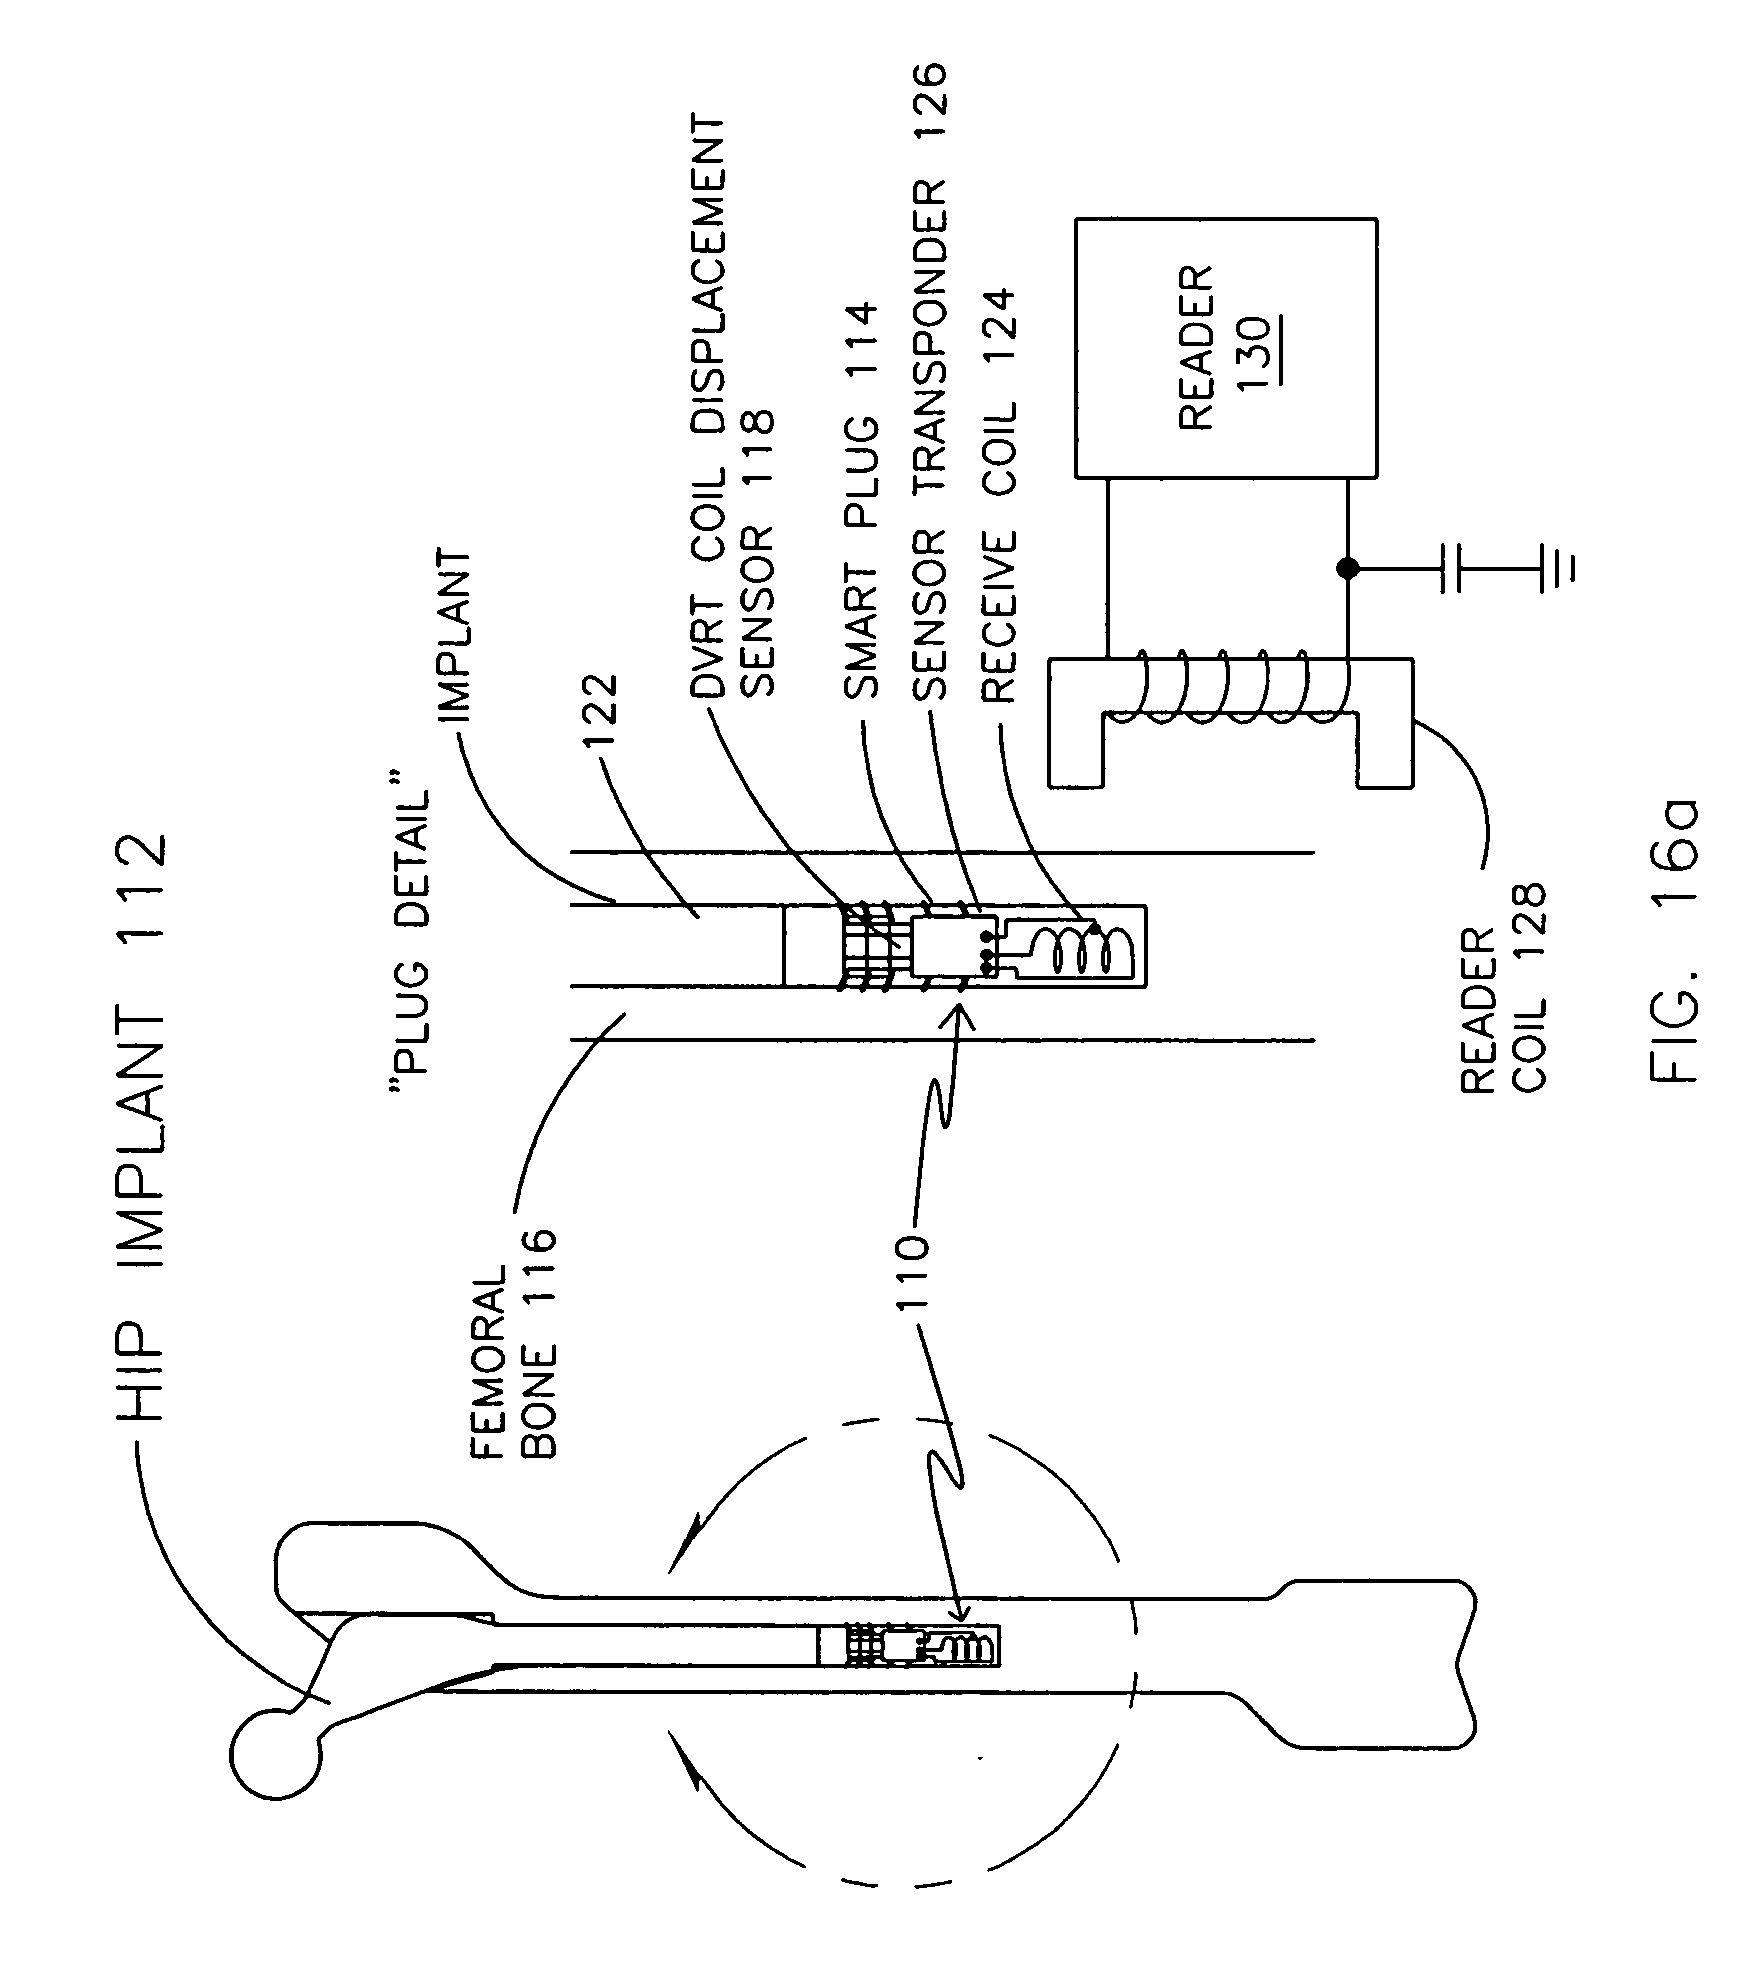 Patent Us20040113790 Remotely Powered And Interrogated Displacementtypeaccelerometercircuitdiagrampng Drawing